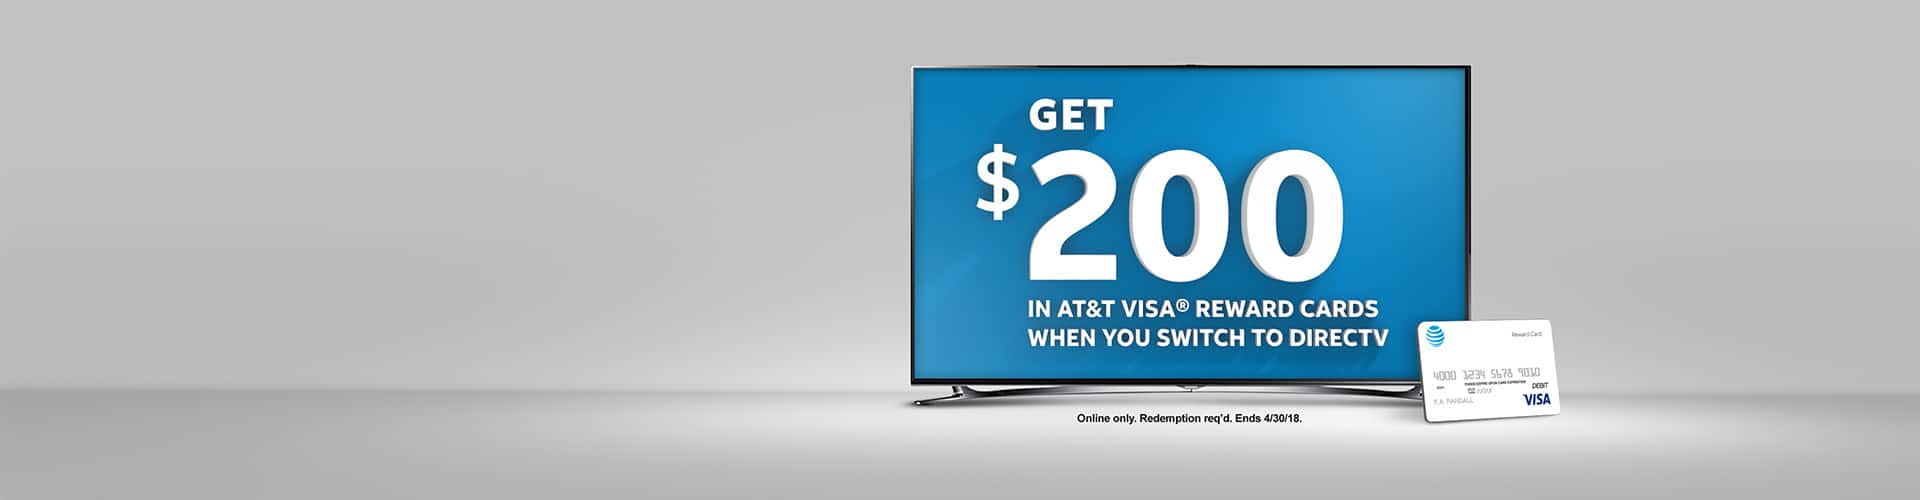 Get $200 AT&T Visa Reward when you order DIRECTV online